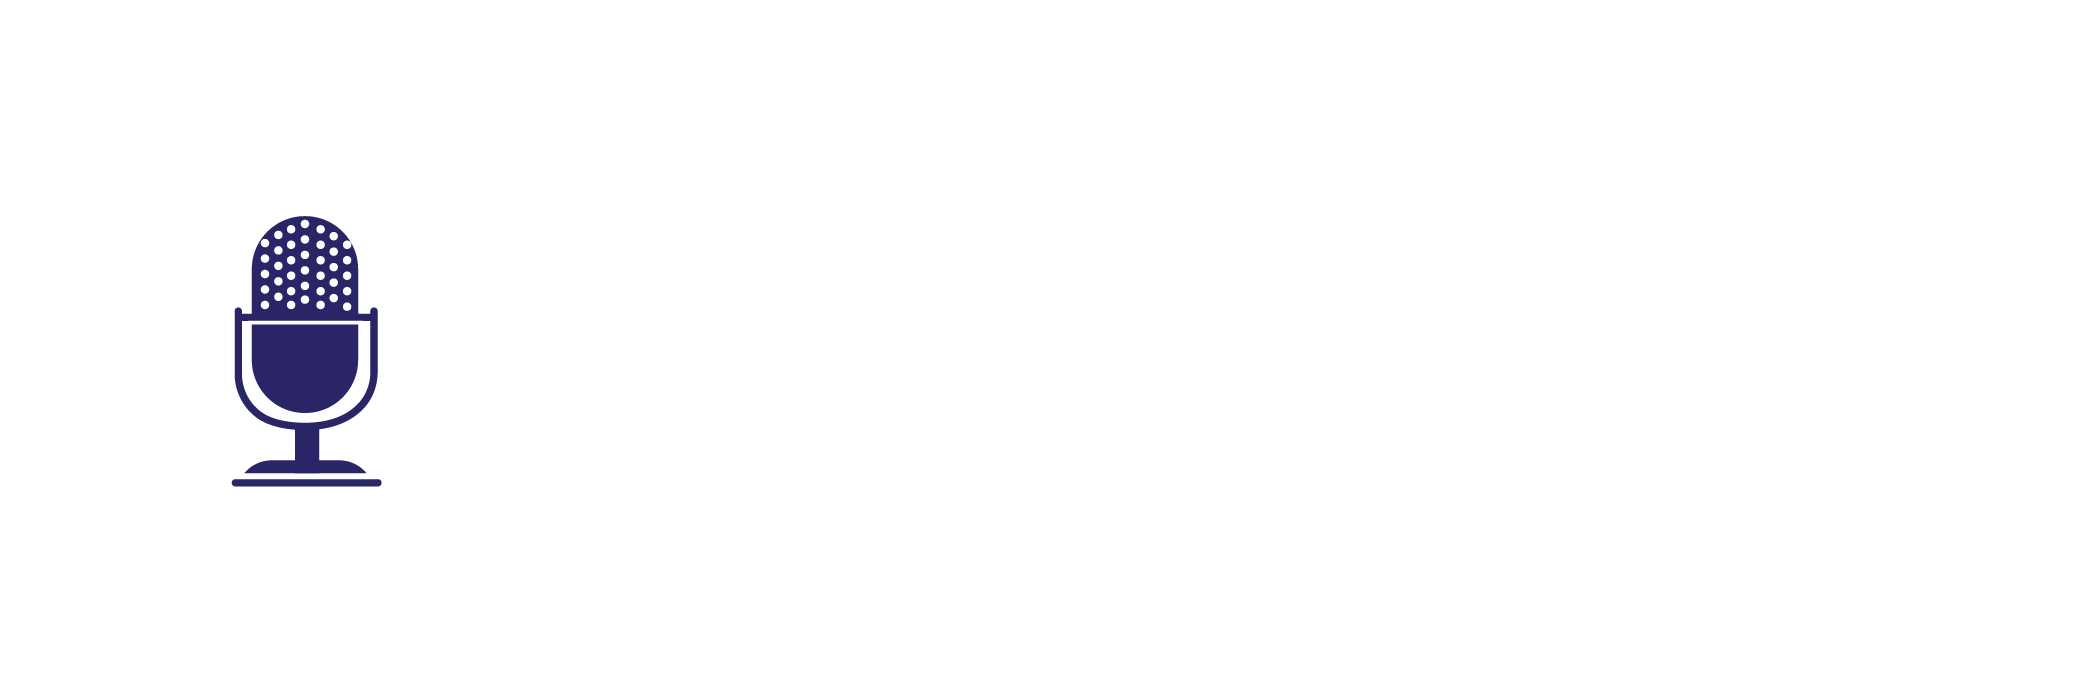 An illustration of a microphone to show the speaking services offered by GLDev.